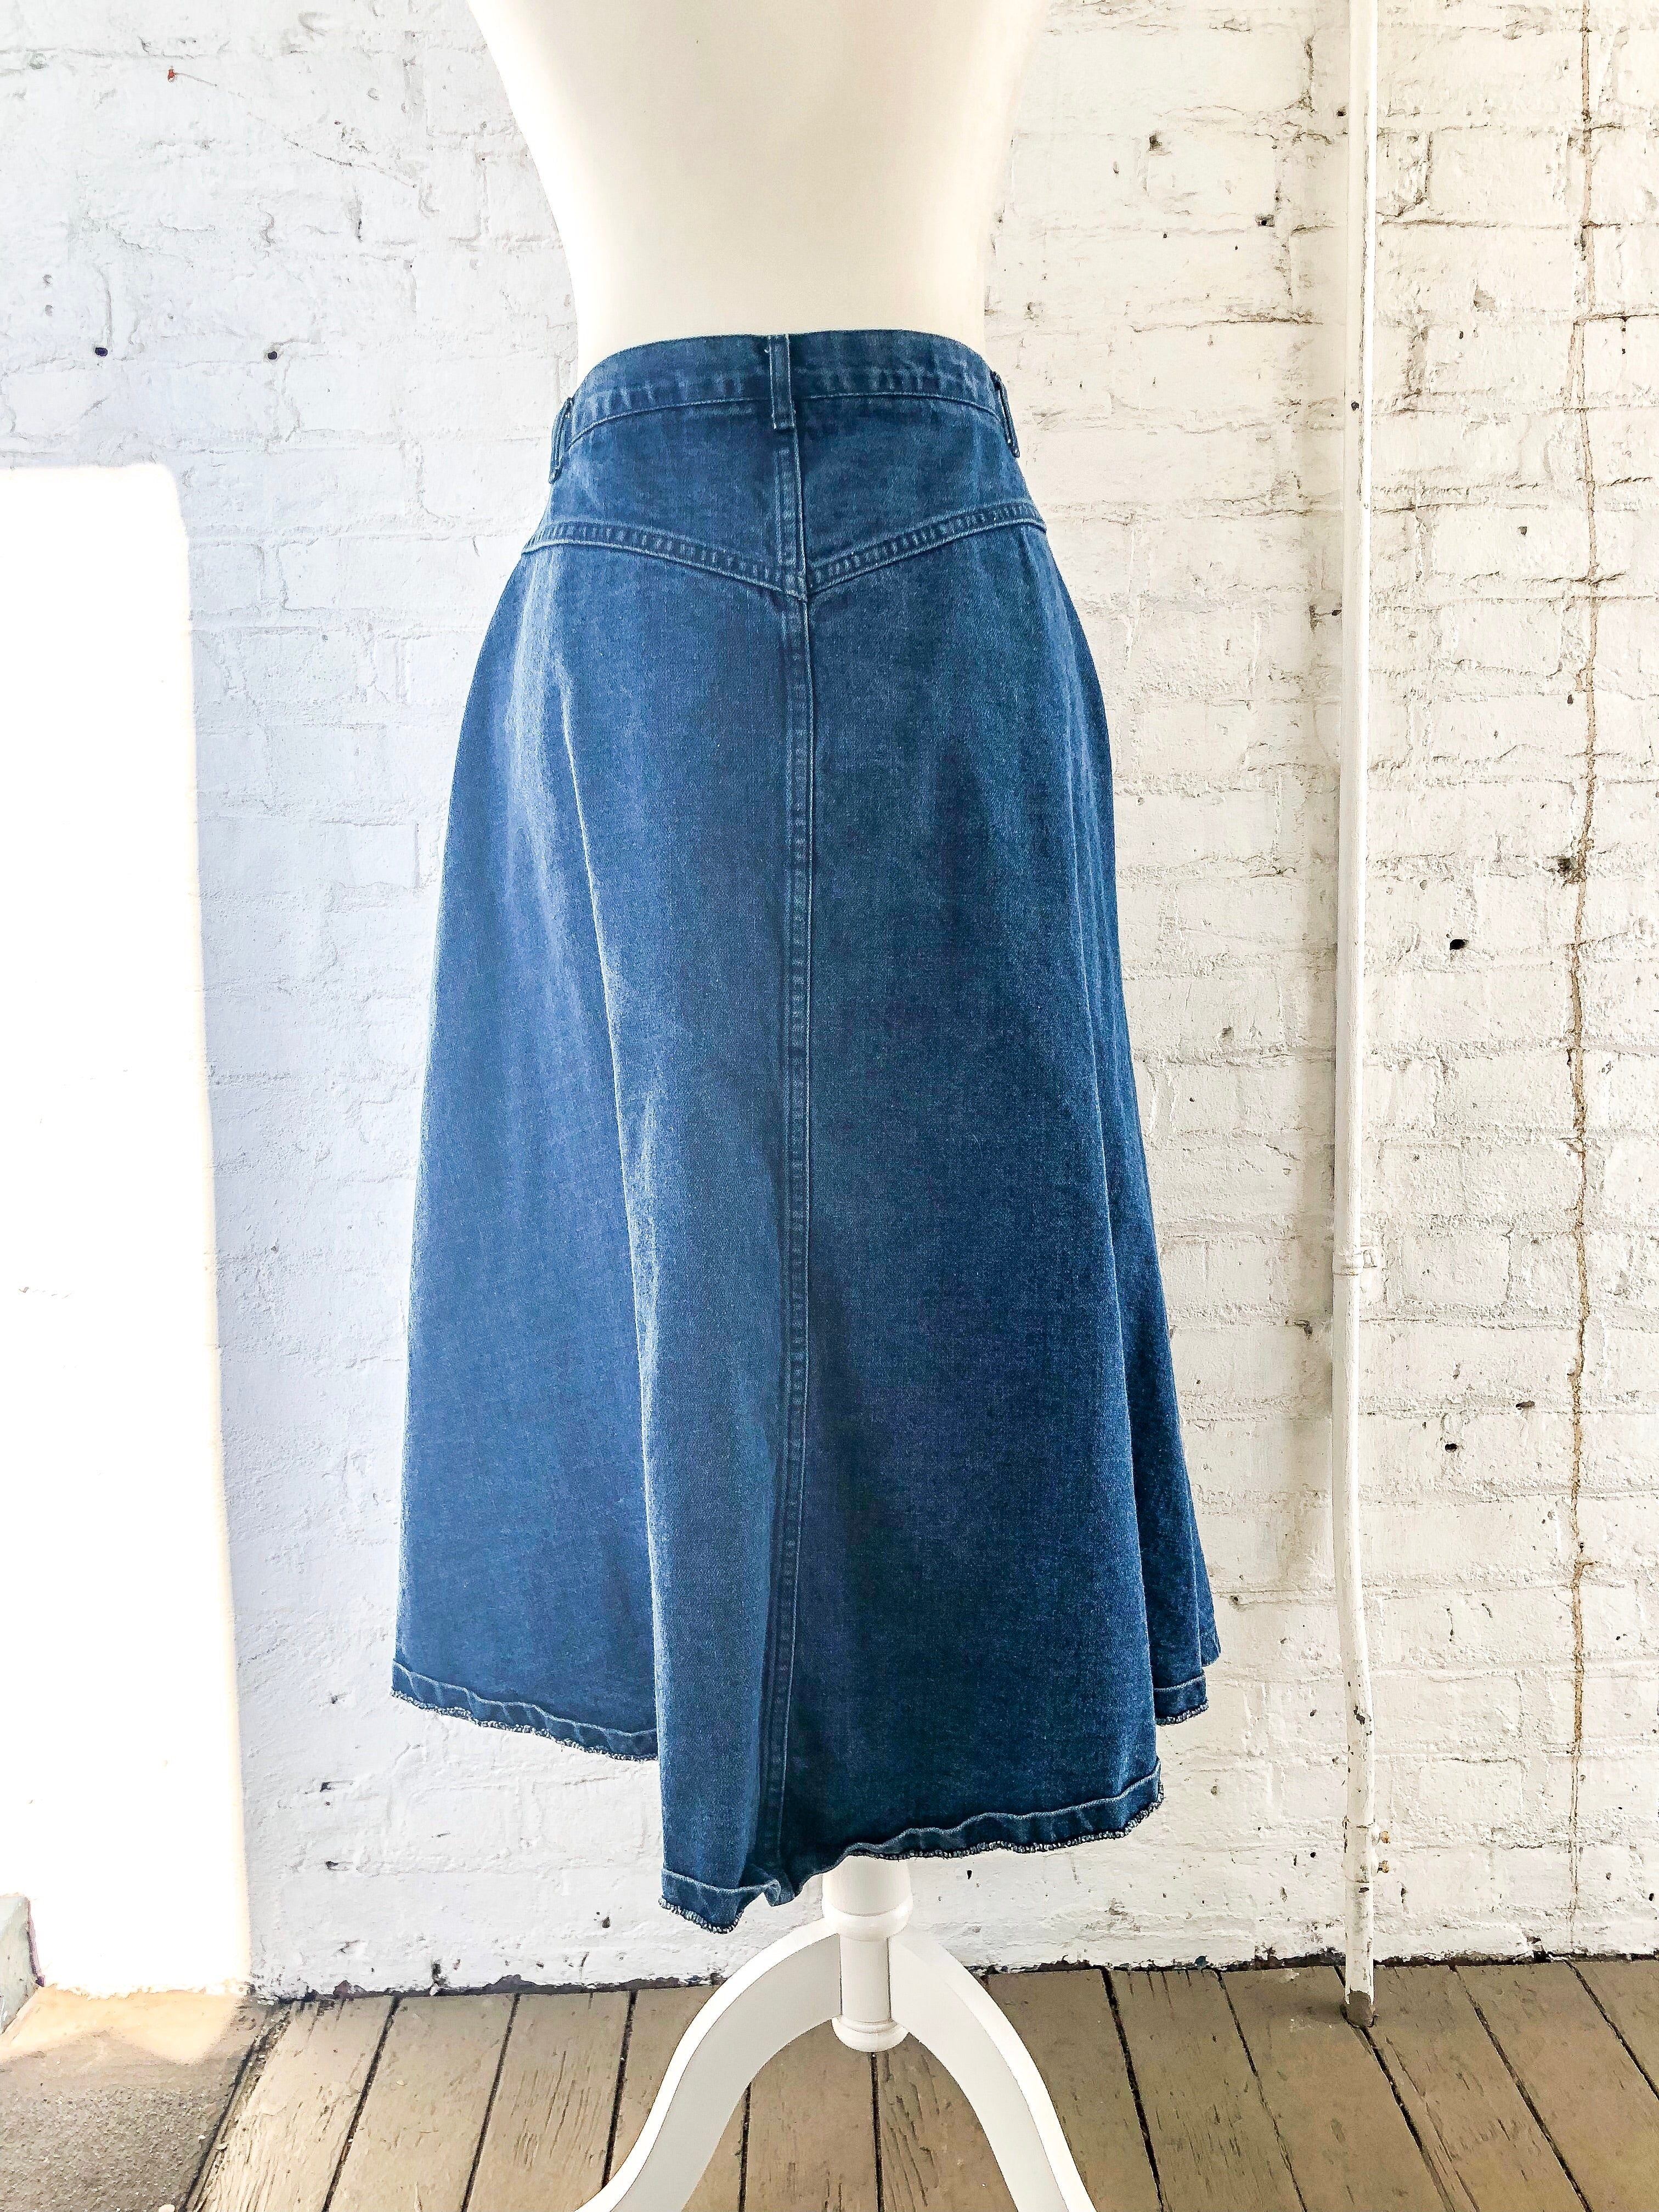 Vintage 80s Denim Midi Skirt / S-M